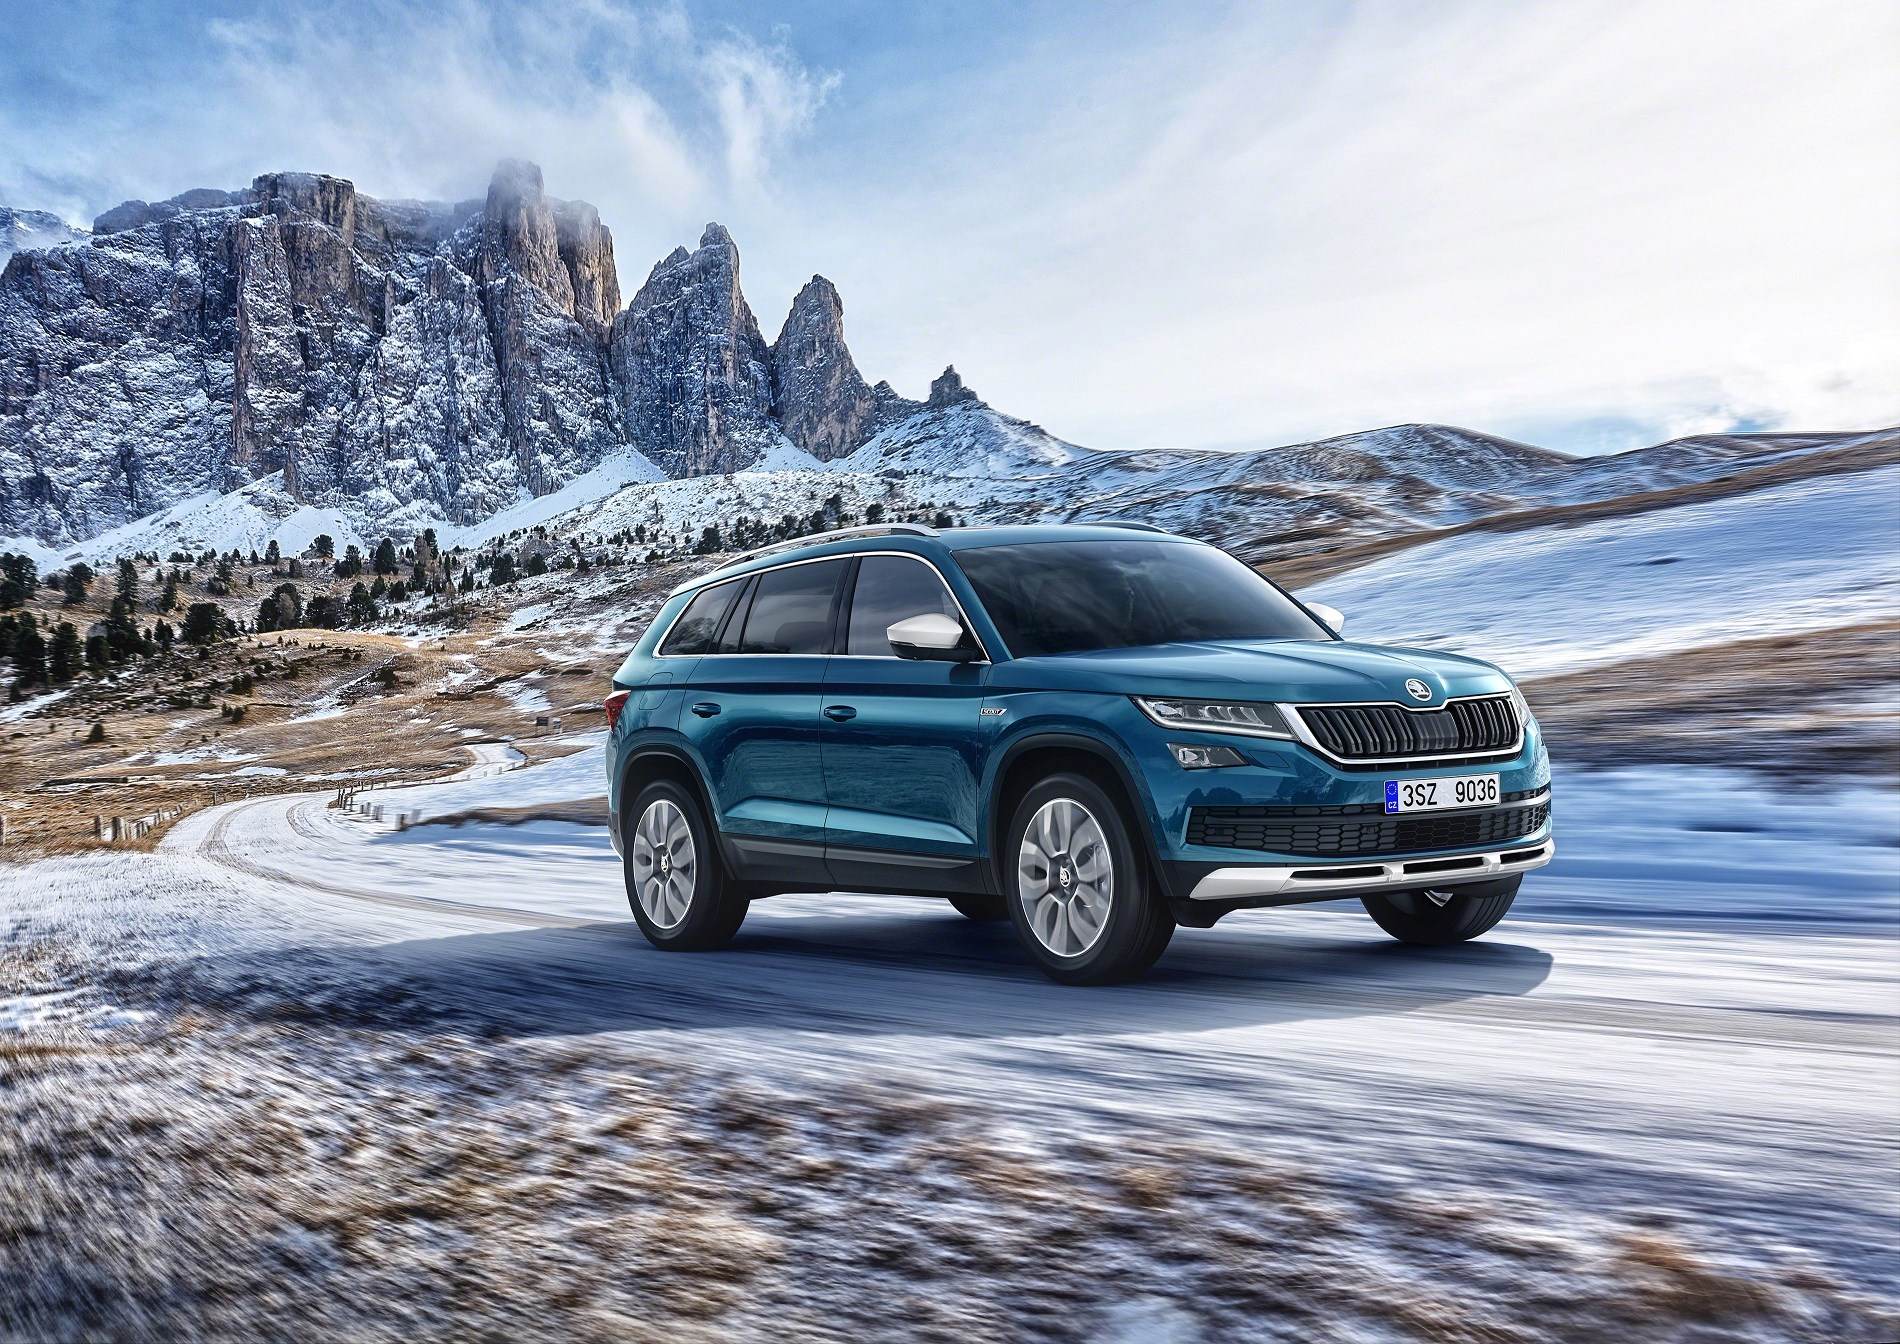 Skoda yeti 2017 review release date new automotive trends skoda - The New 2017 Skoda Kodiaq Scout